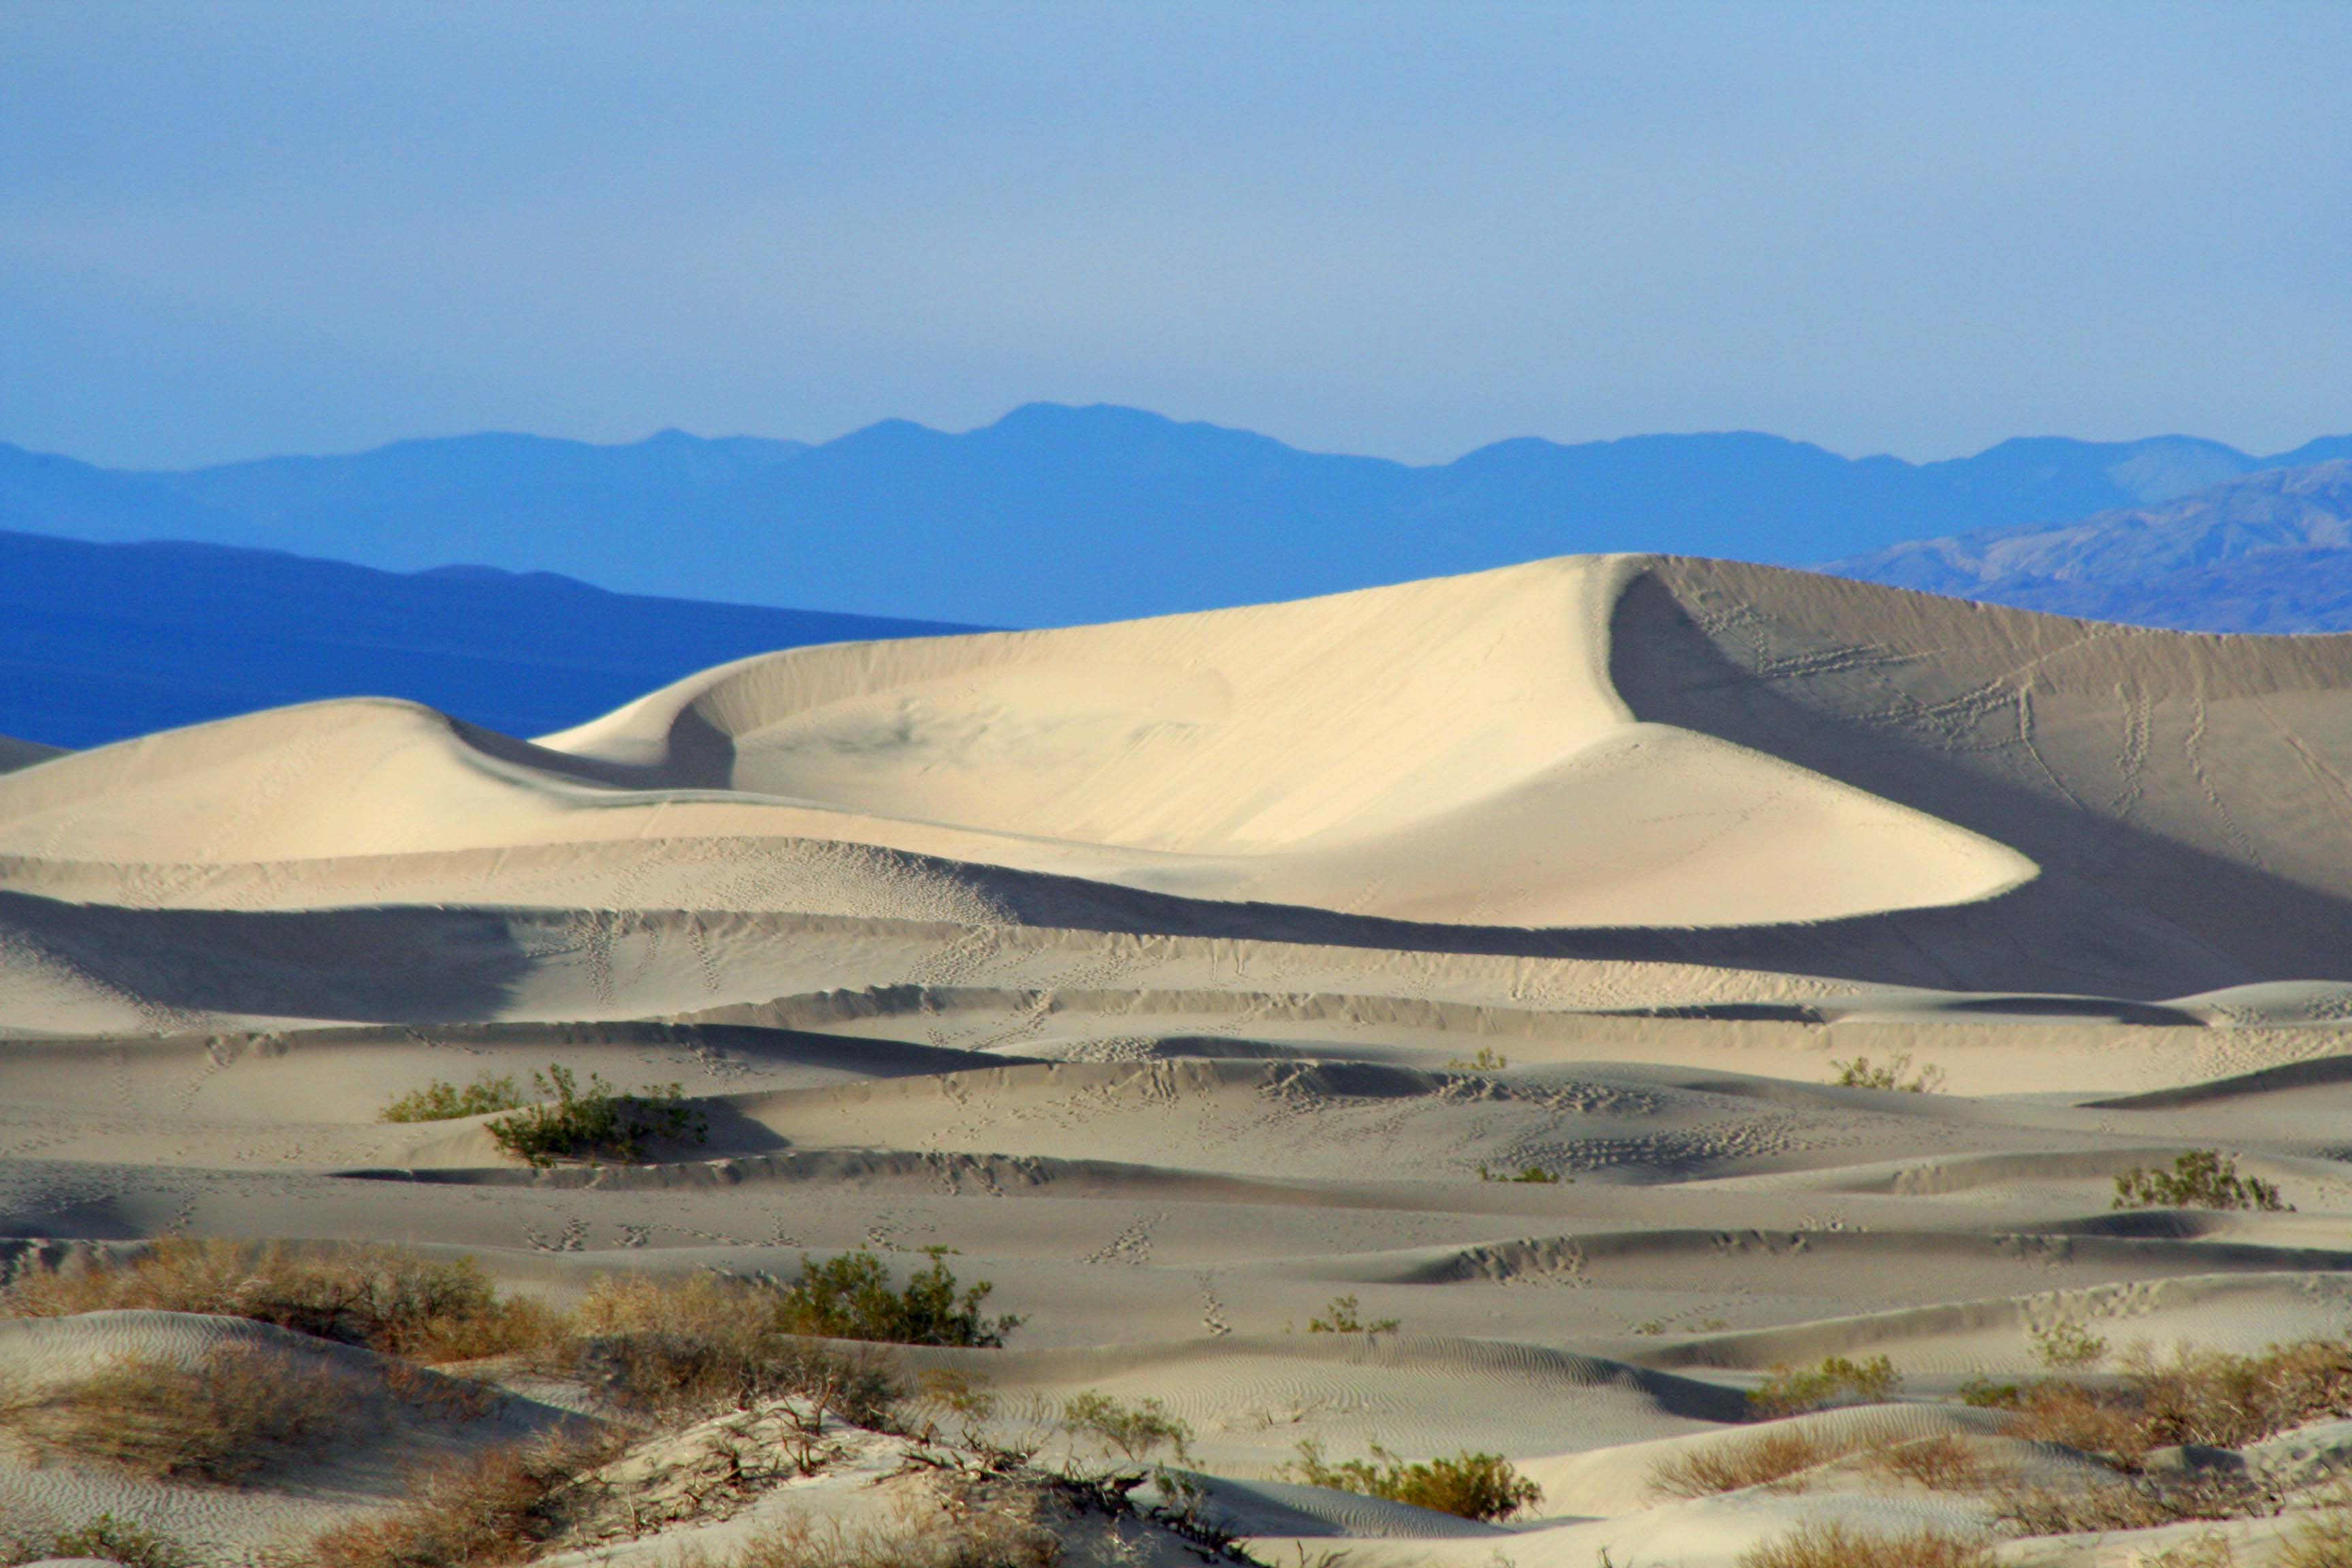 Sand Dunes in Death Valley National Park.